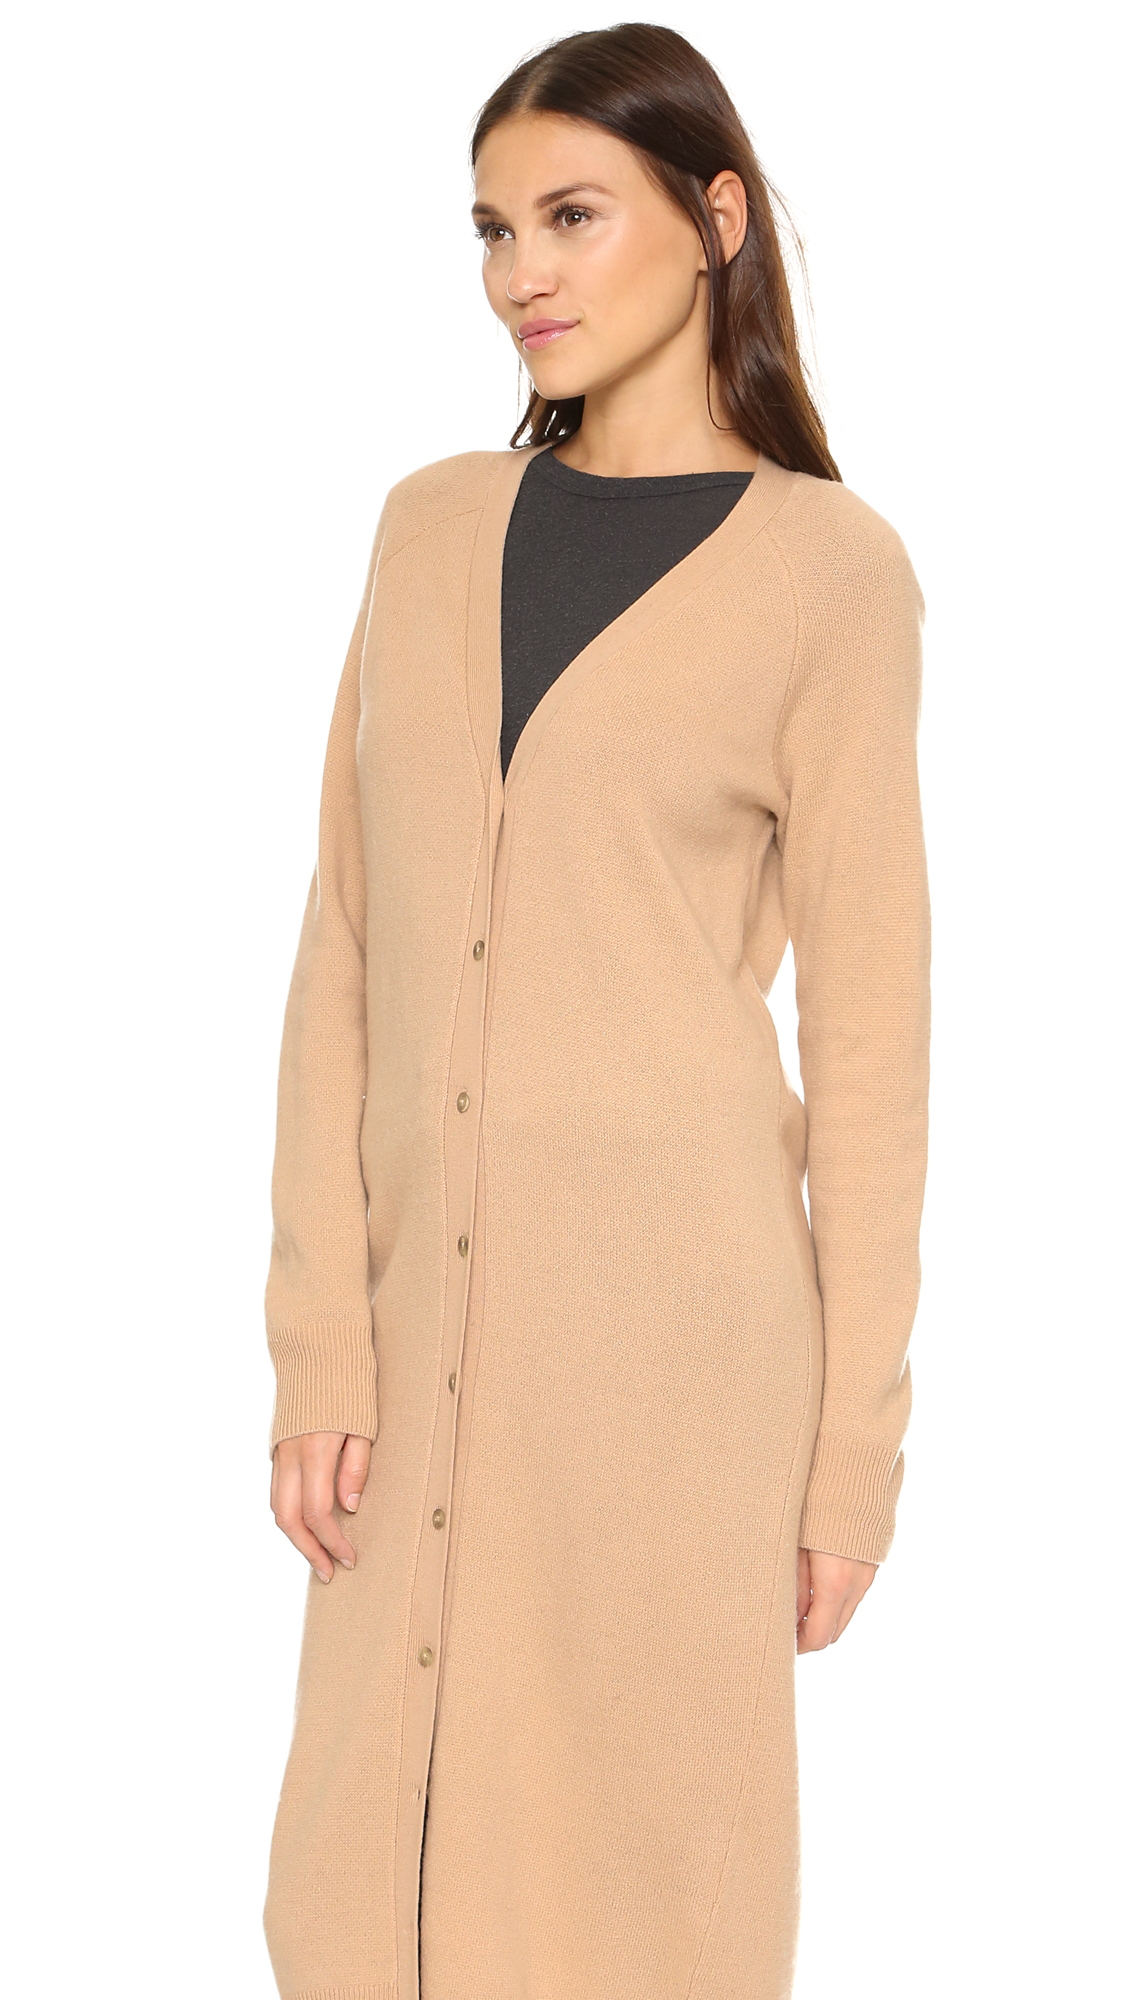 talexander wang cashwool floor length cardigan - mannequin in